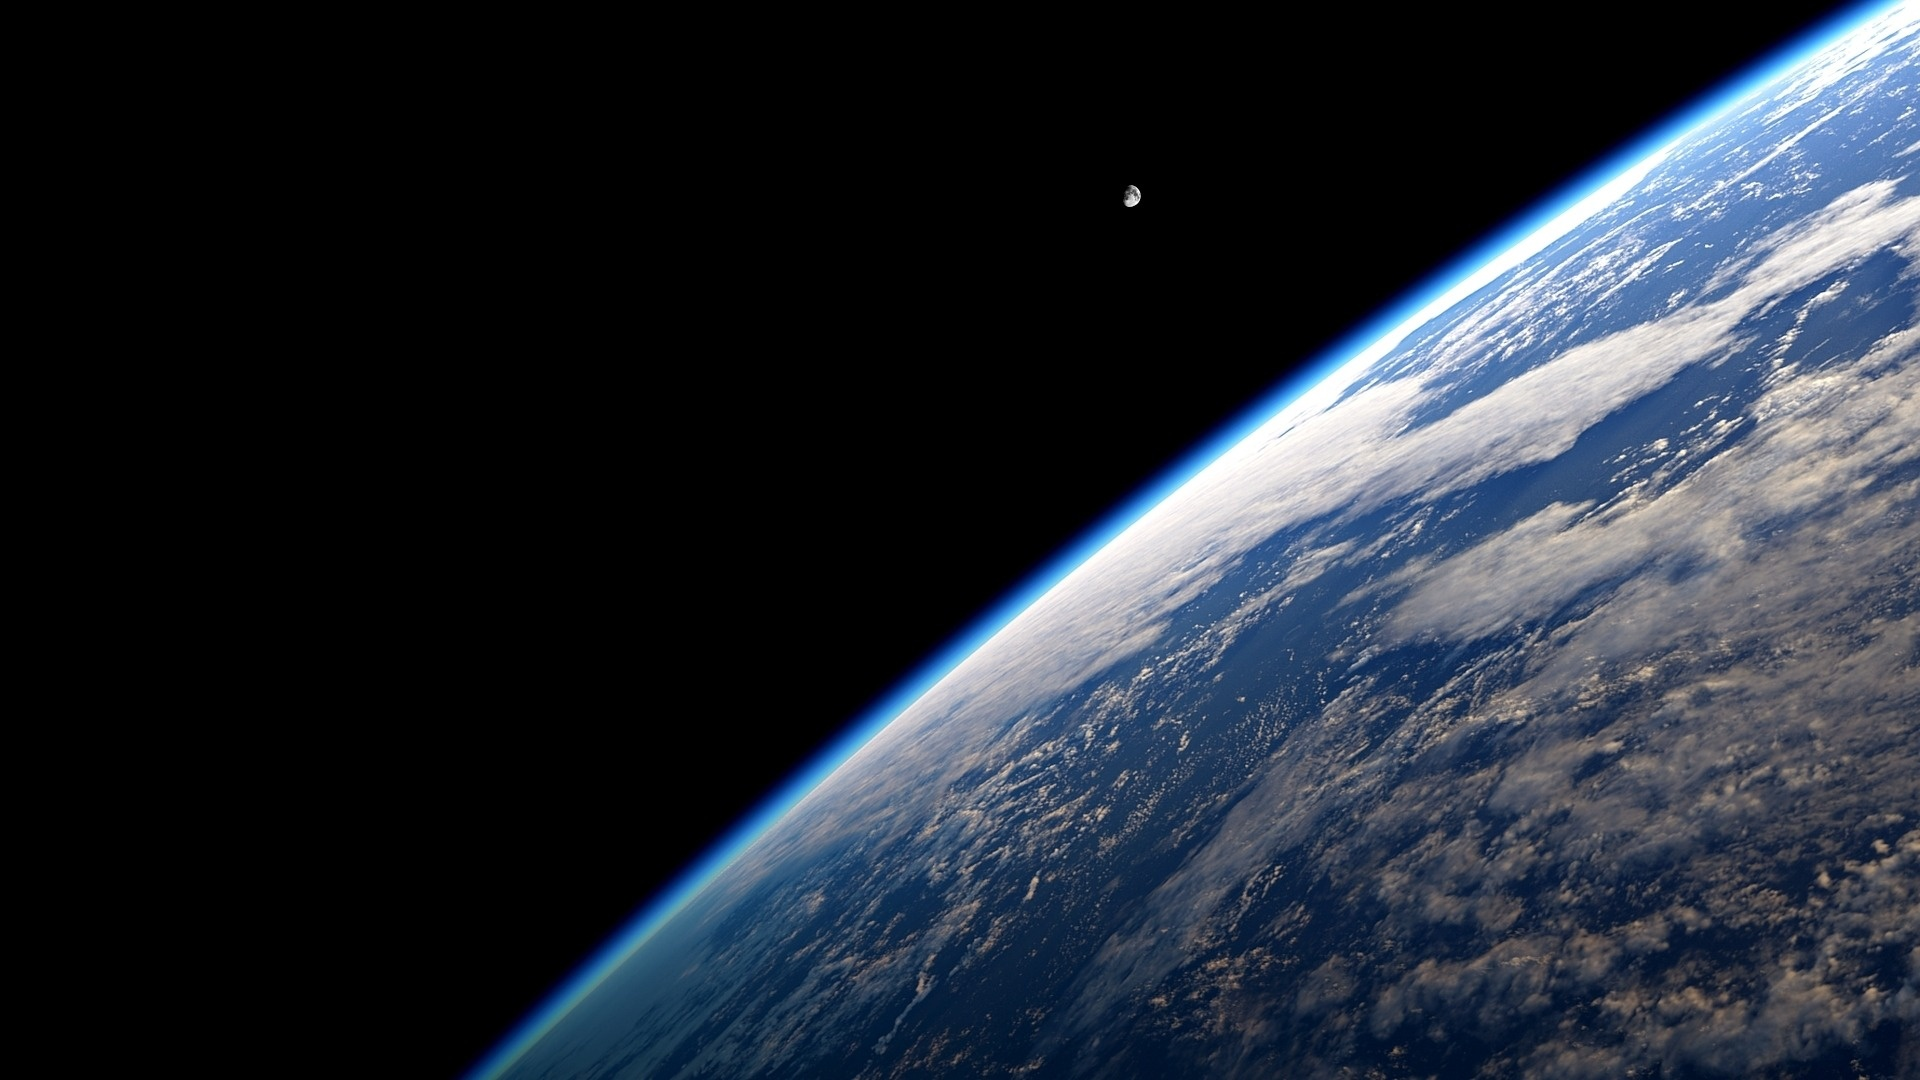 Earth Space Background wallpaper wallpaper hd background desktop 1920x1080